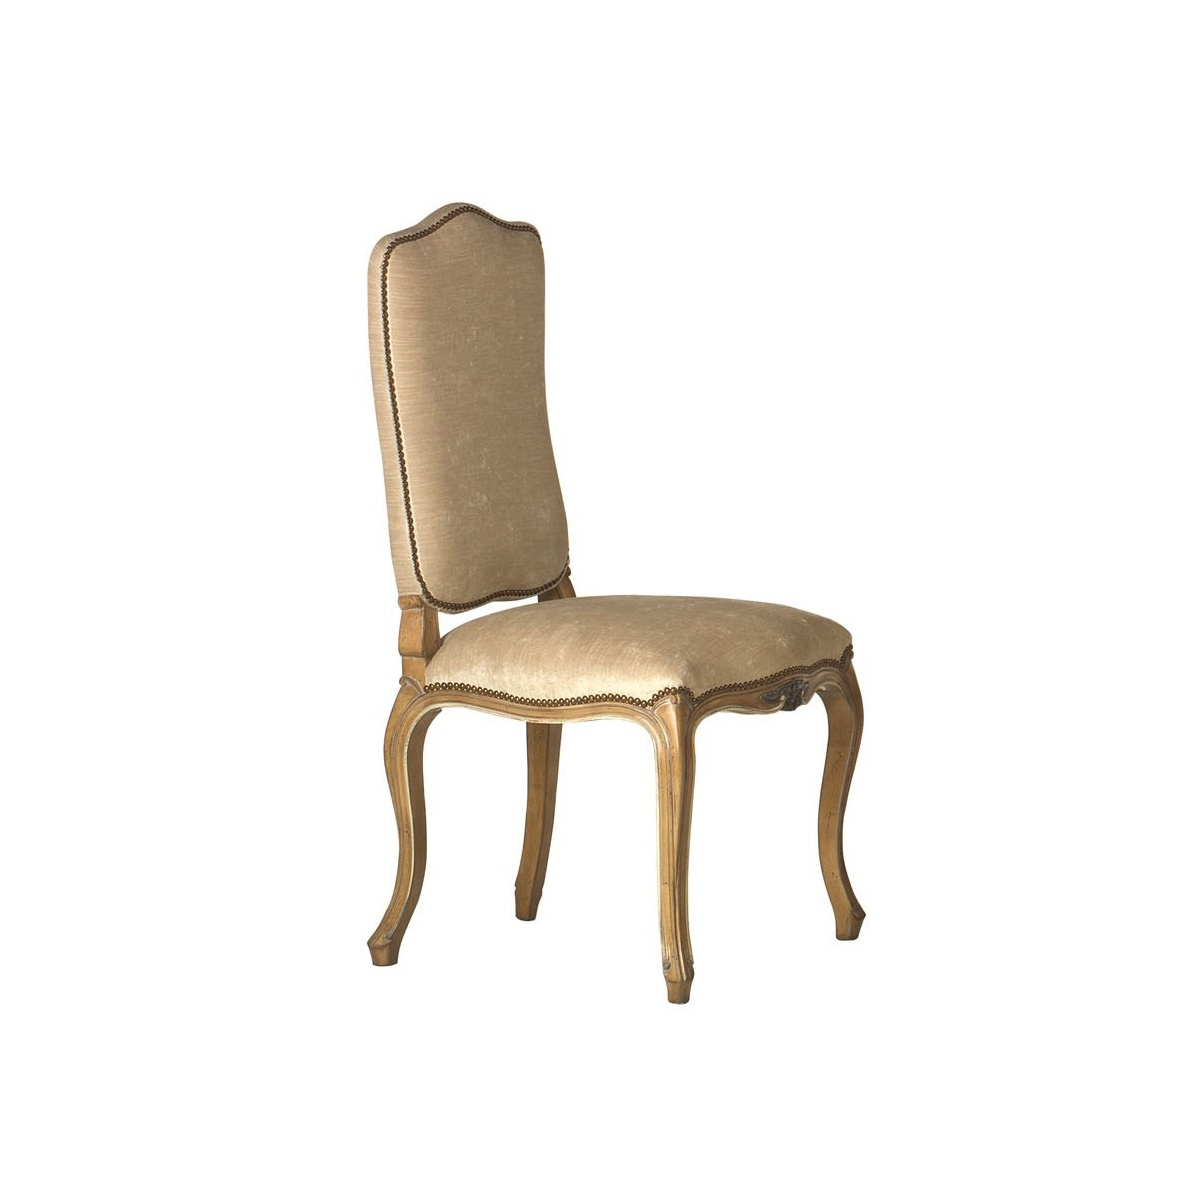 Luxury upholstered dining chair swanky interiors for Upholstered dining chairs